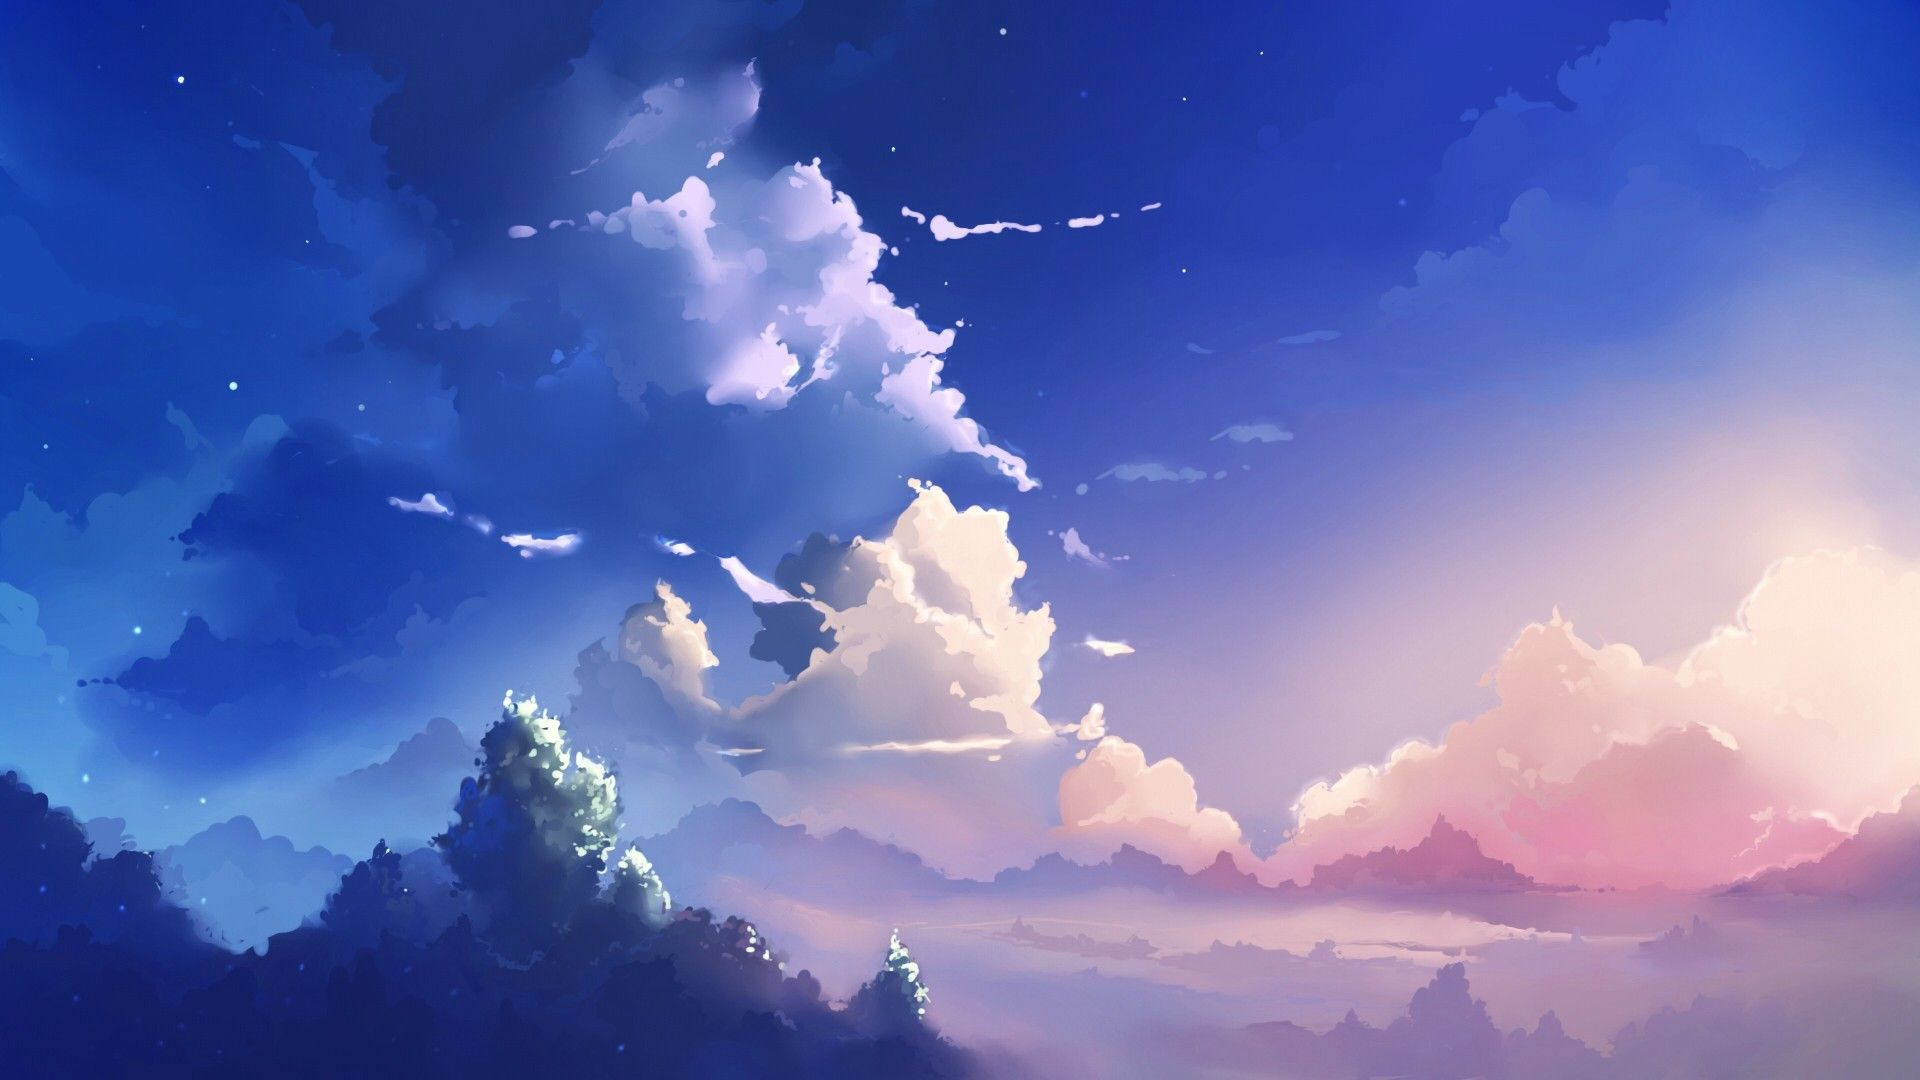 Amazing Anime Background 1920x1080 For Pc With Images Anime